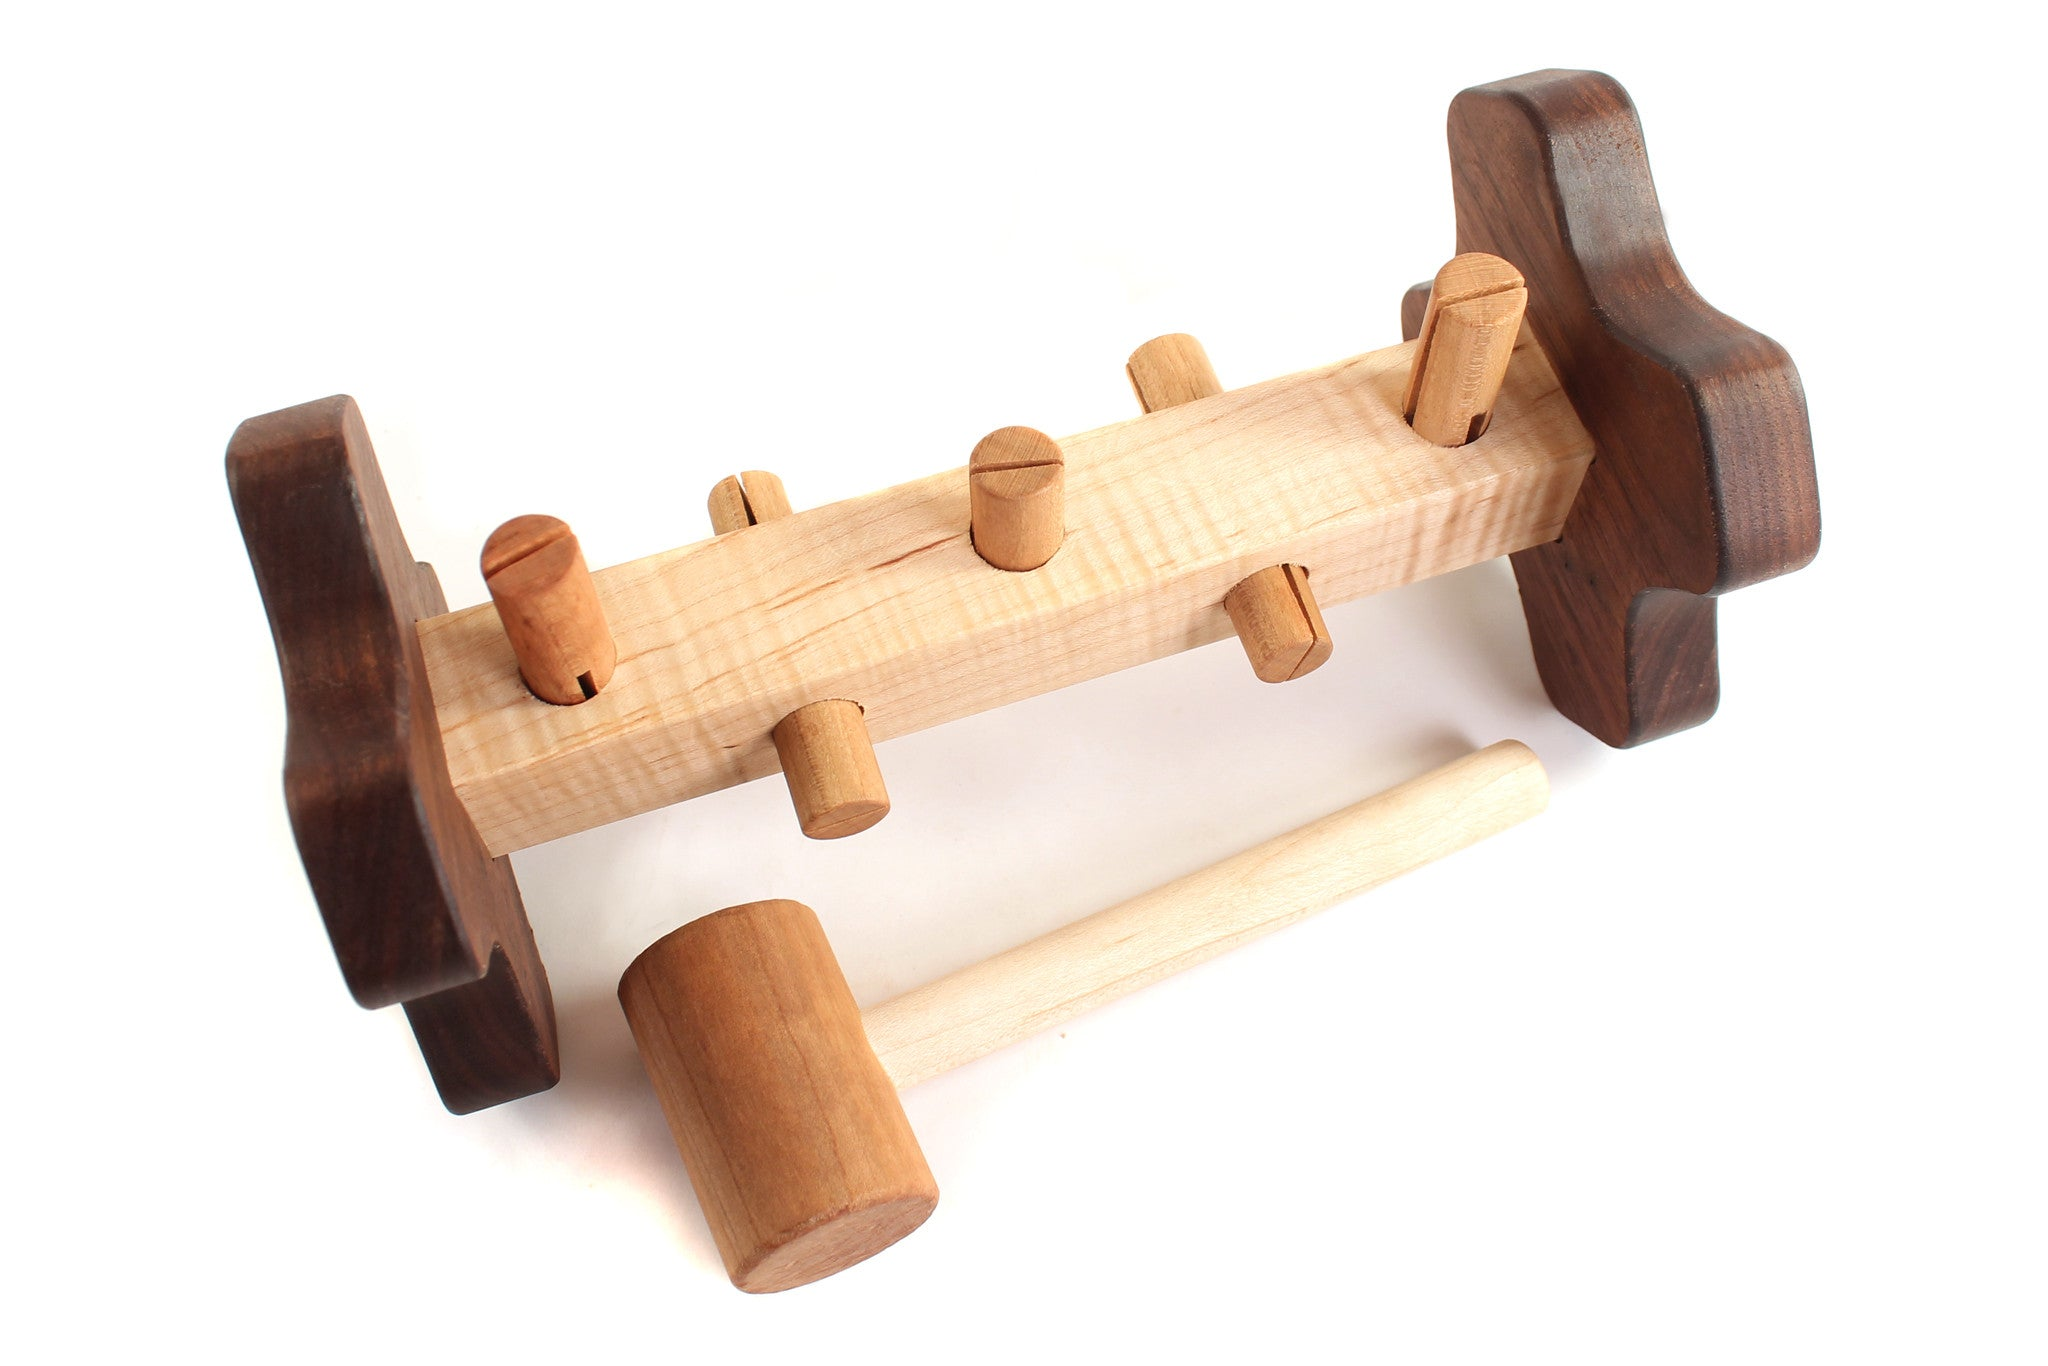 Wooden Hammer And Peg Toy Smiling Tree Toys